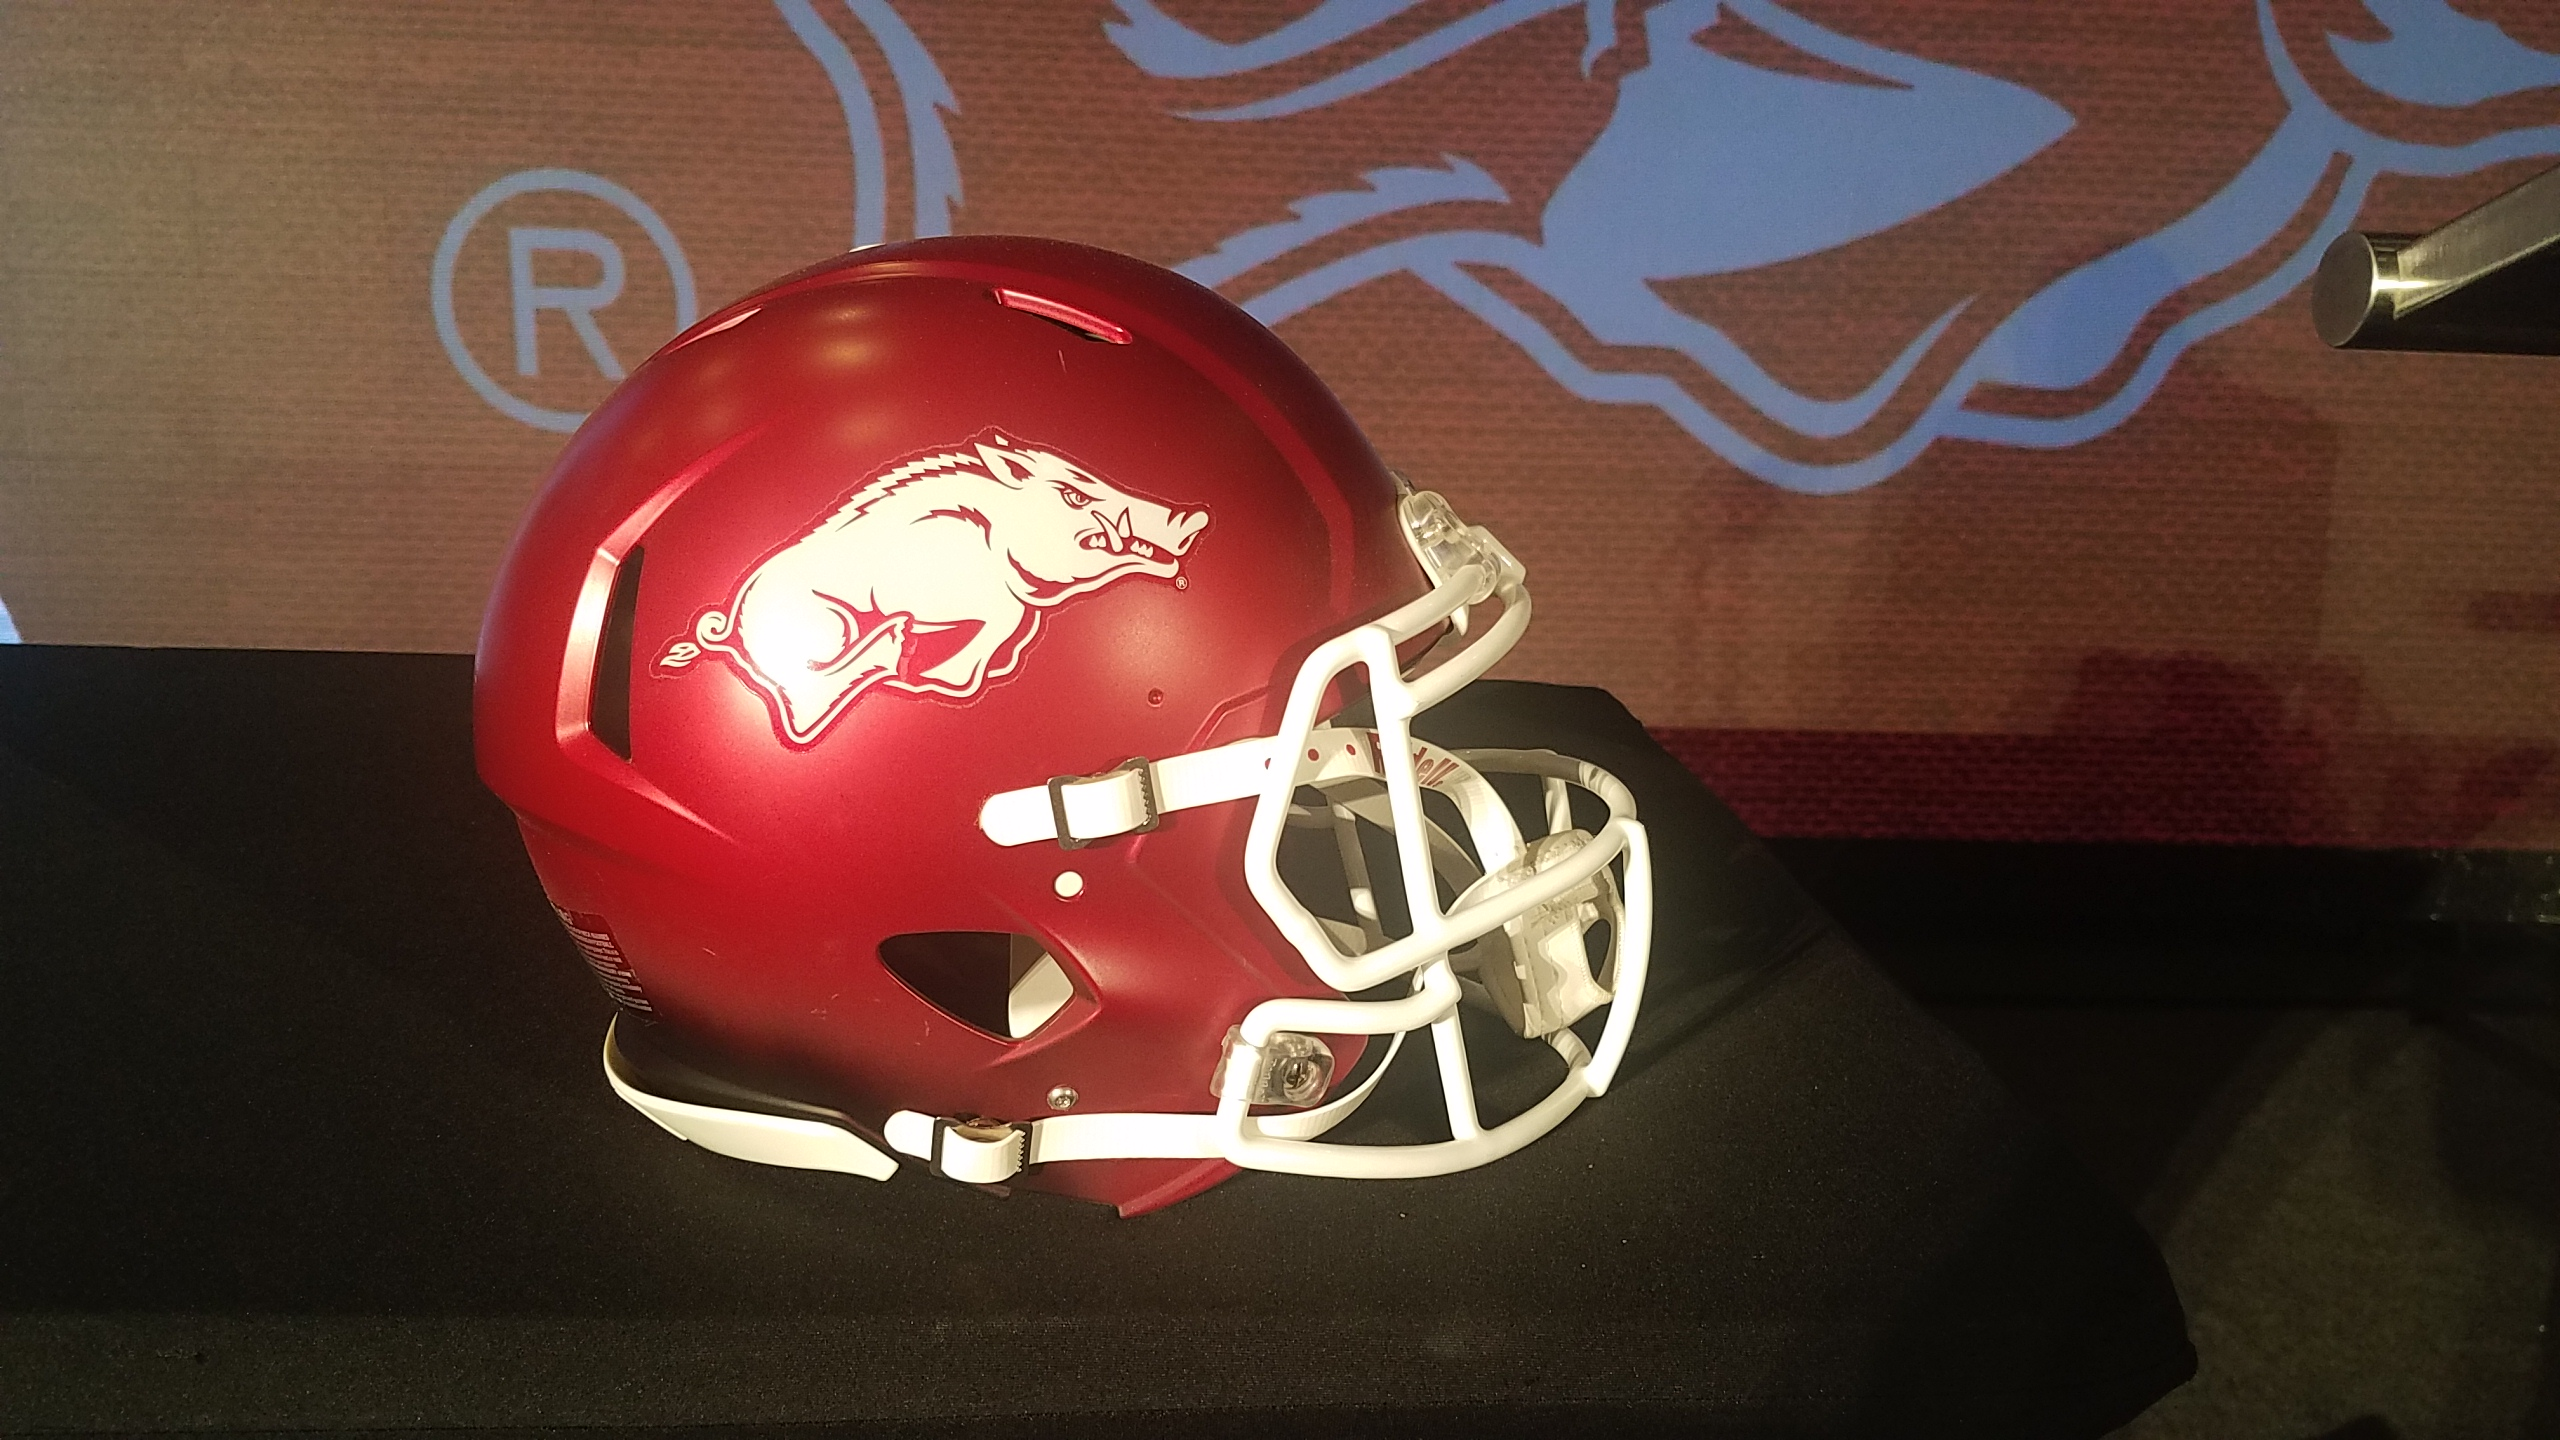 VIDEOS/PODCASTS: Everything from Arkansas at #SECMD21